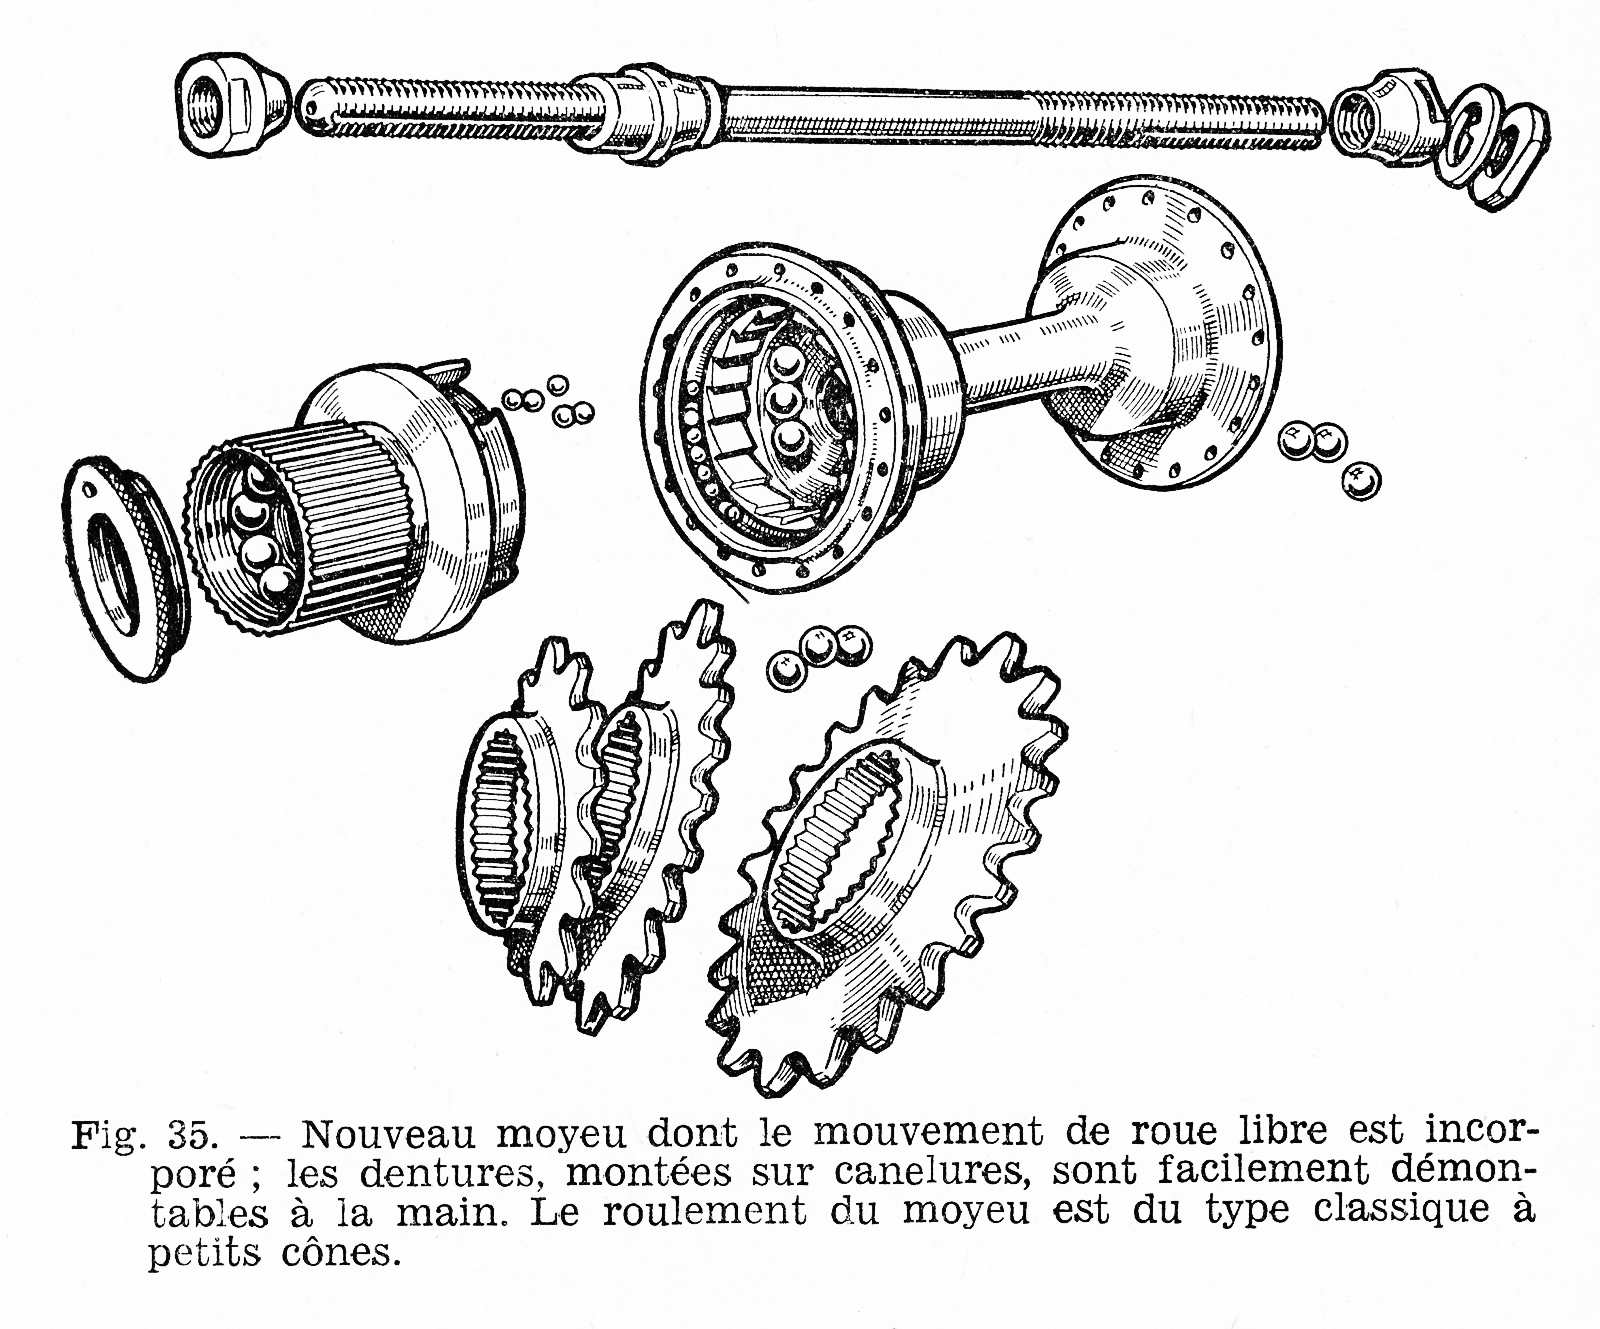 Bicycle Rear Hub Exploded View : Images about daniel rebour illustrations on pinterest